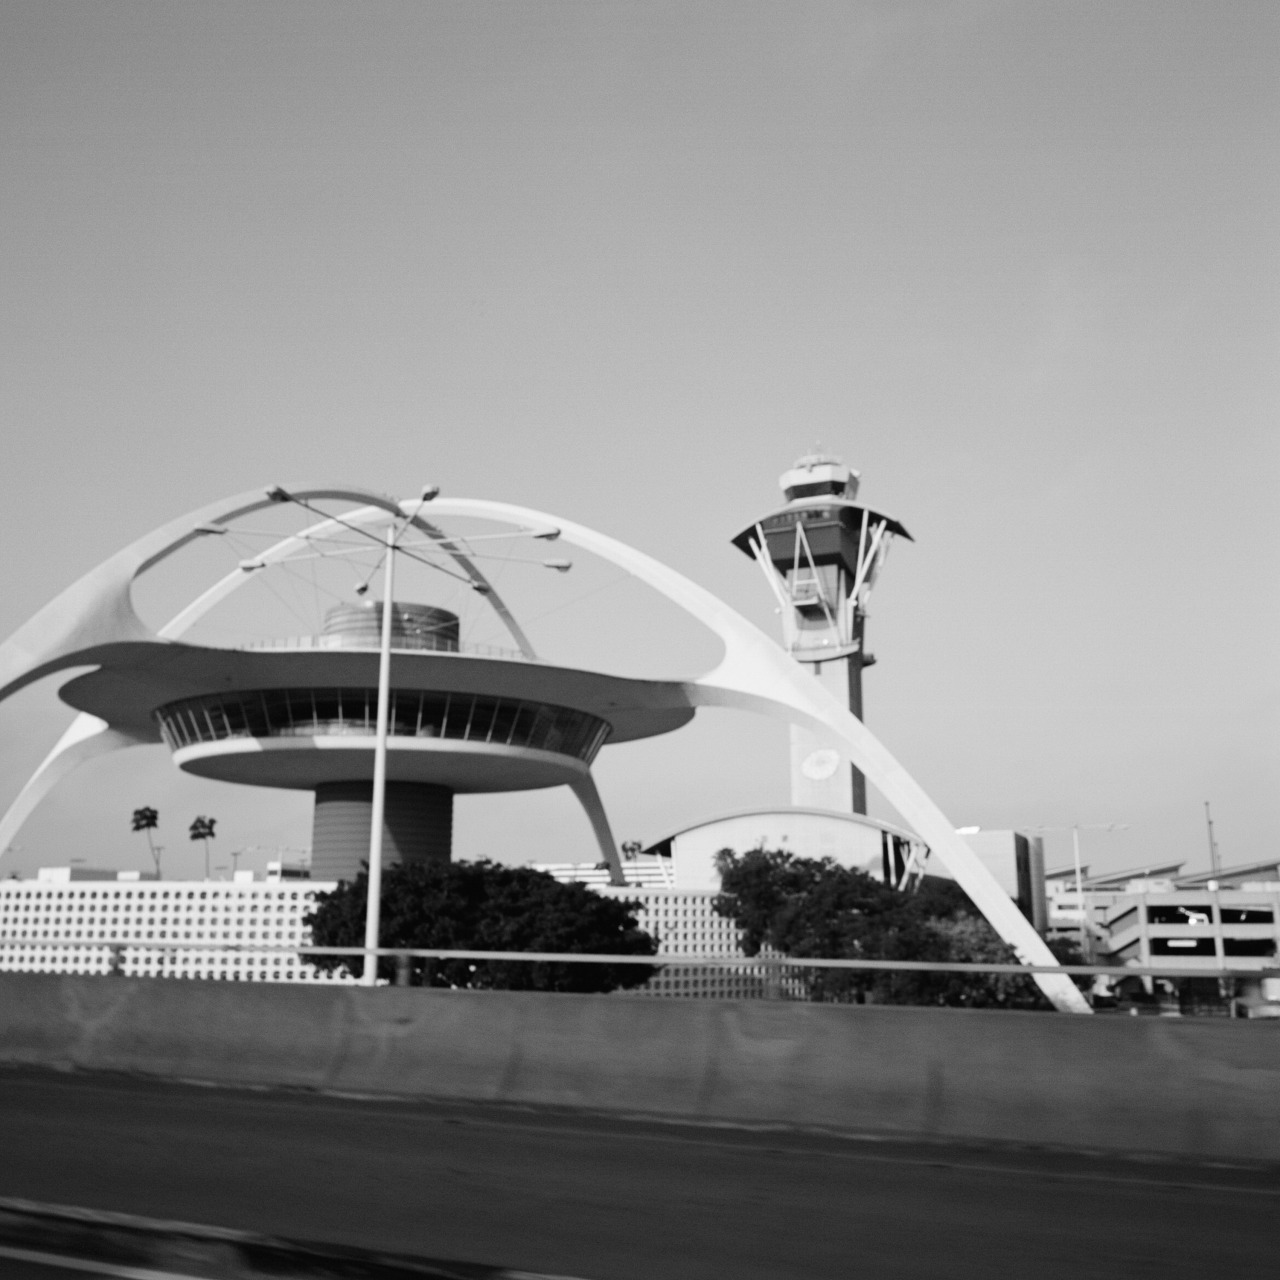 The LAX Theme Building by Pereira & Luckman Architects.